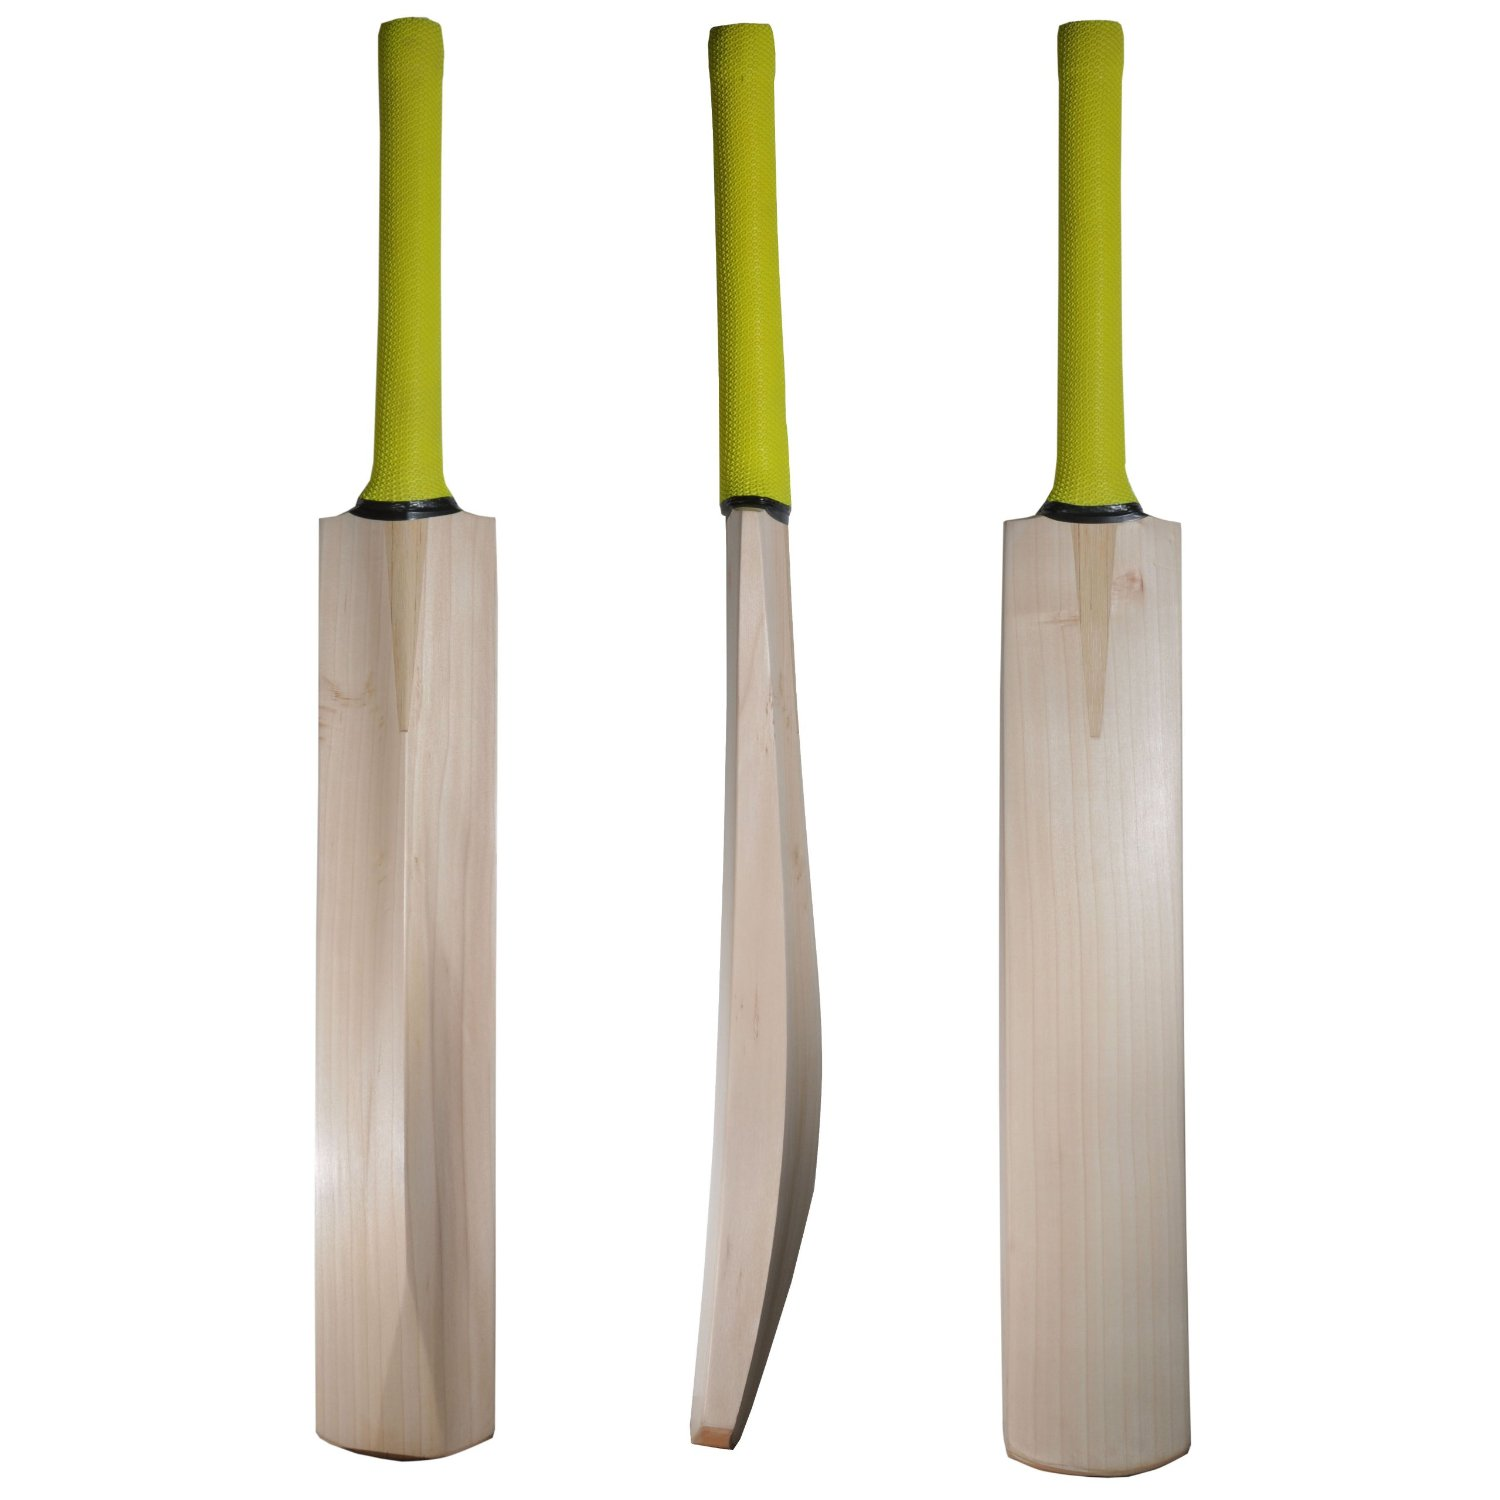 Grade A Plain Cricket Bat